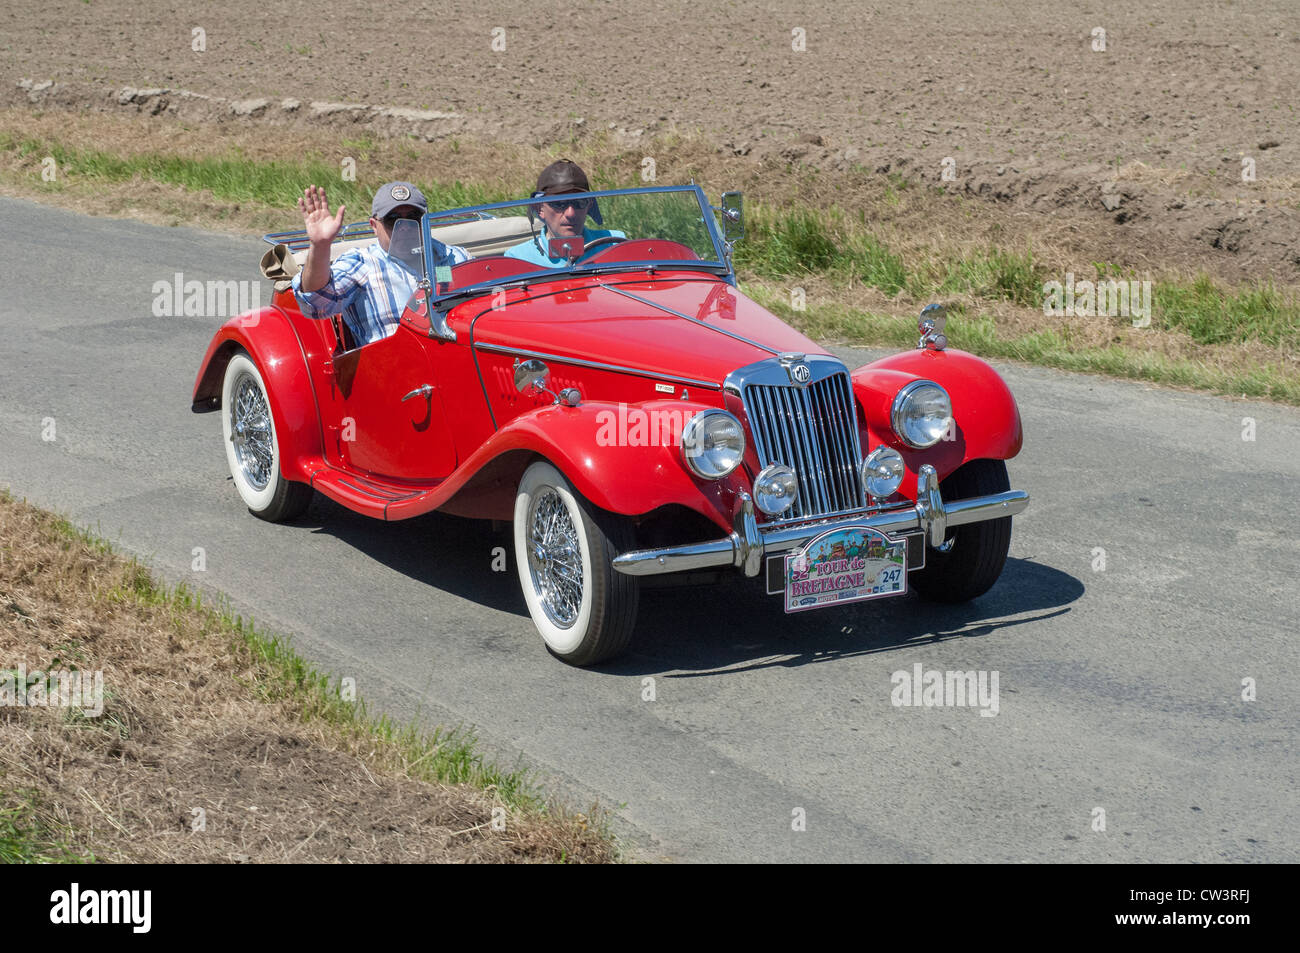 MG TF 1500 OF 1955 in the Tour de Bretagne near Pordic in the Cotes d'Amor (22) department of France 2012 - Stock Image